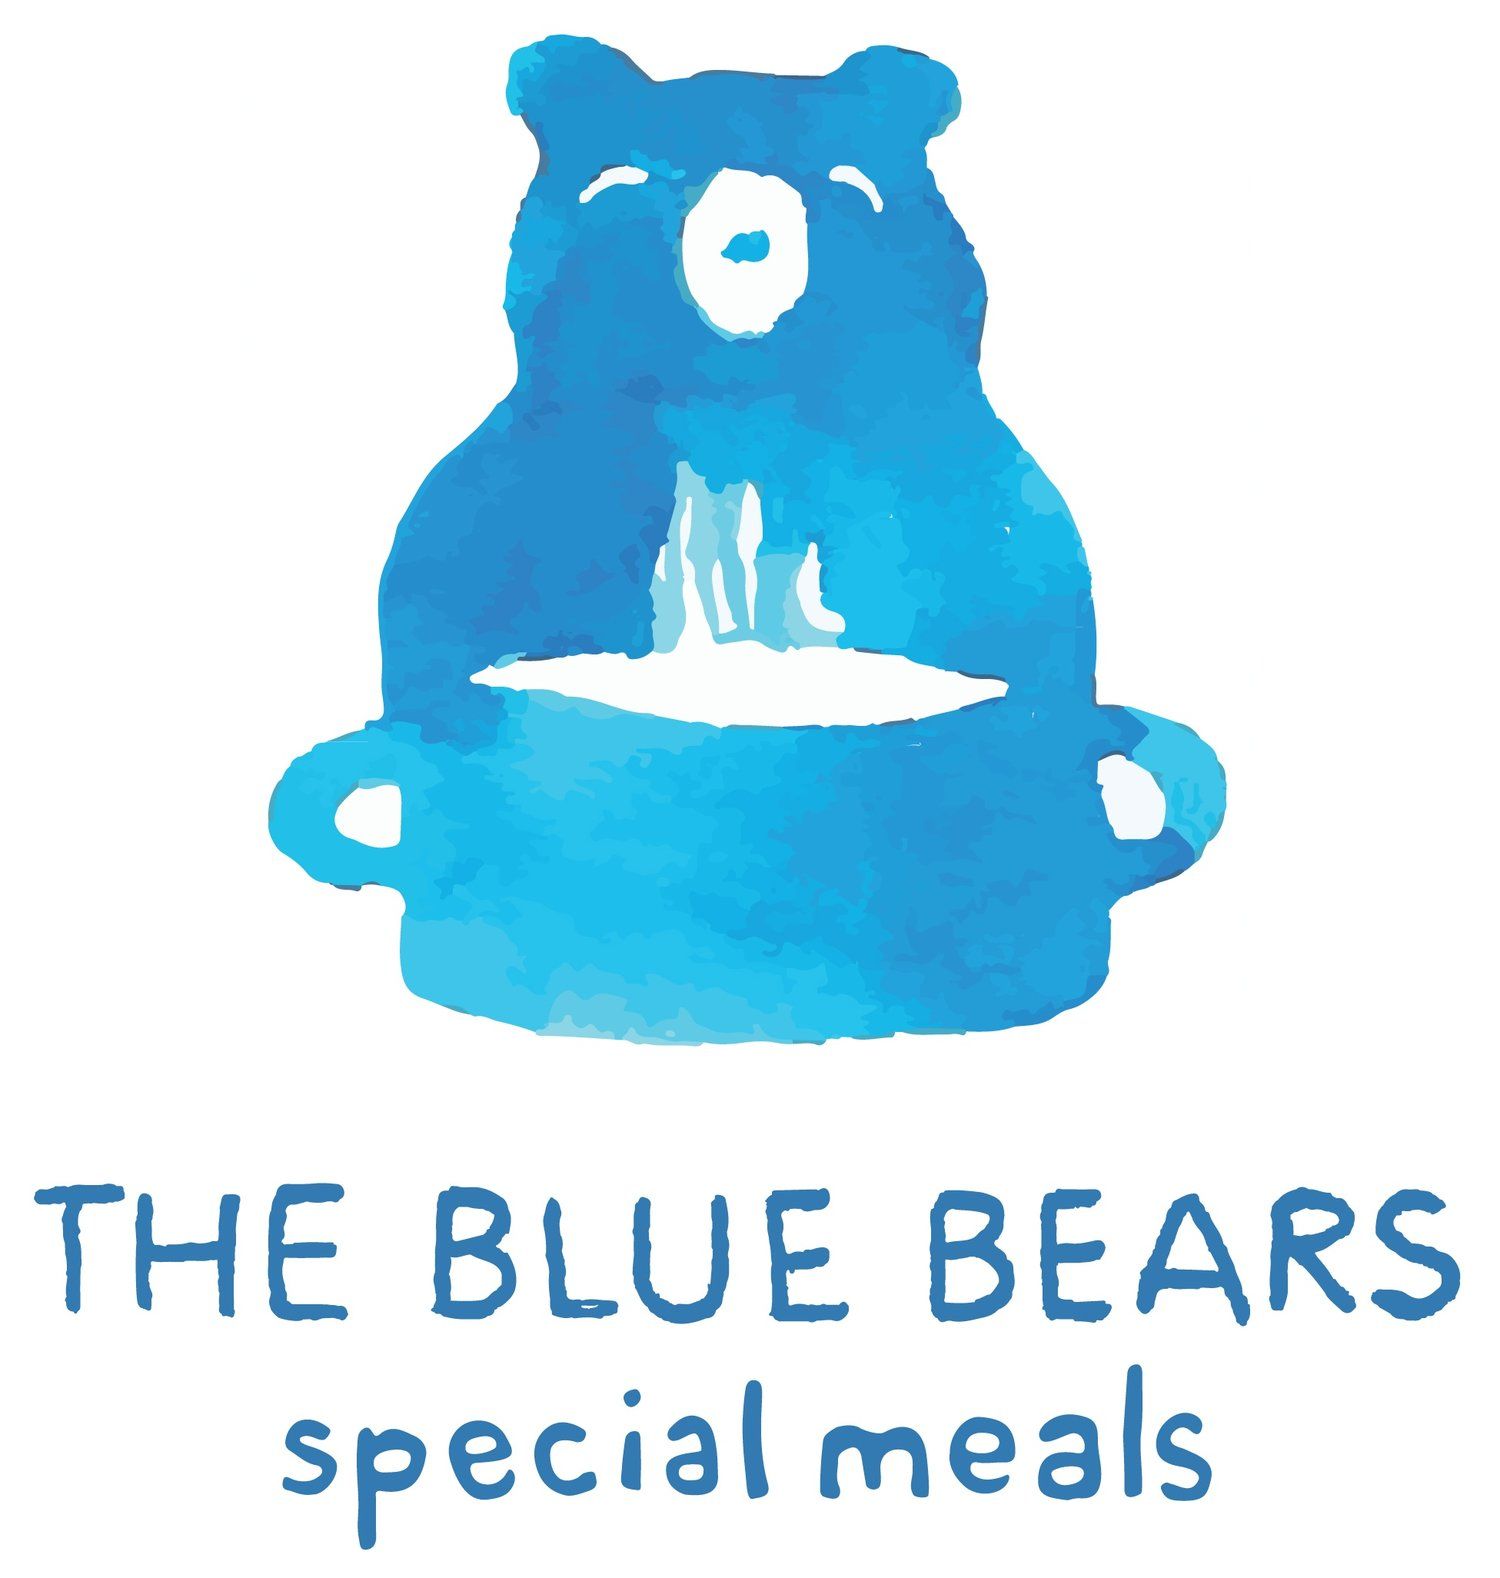 THE BLUE BEARS Special Meals